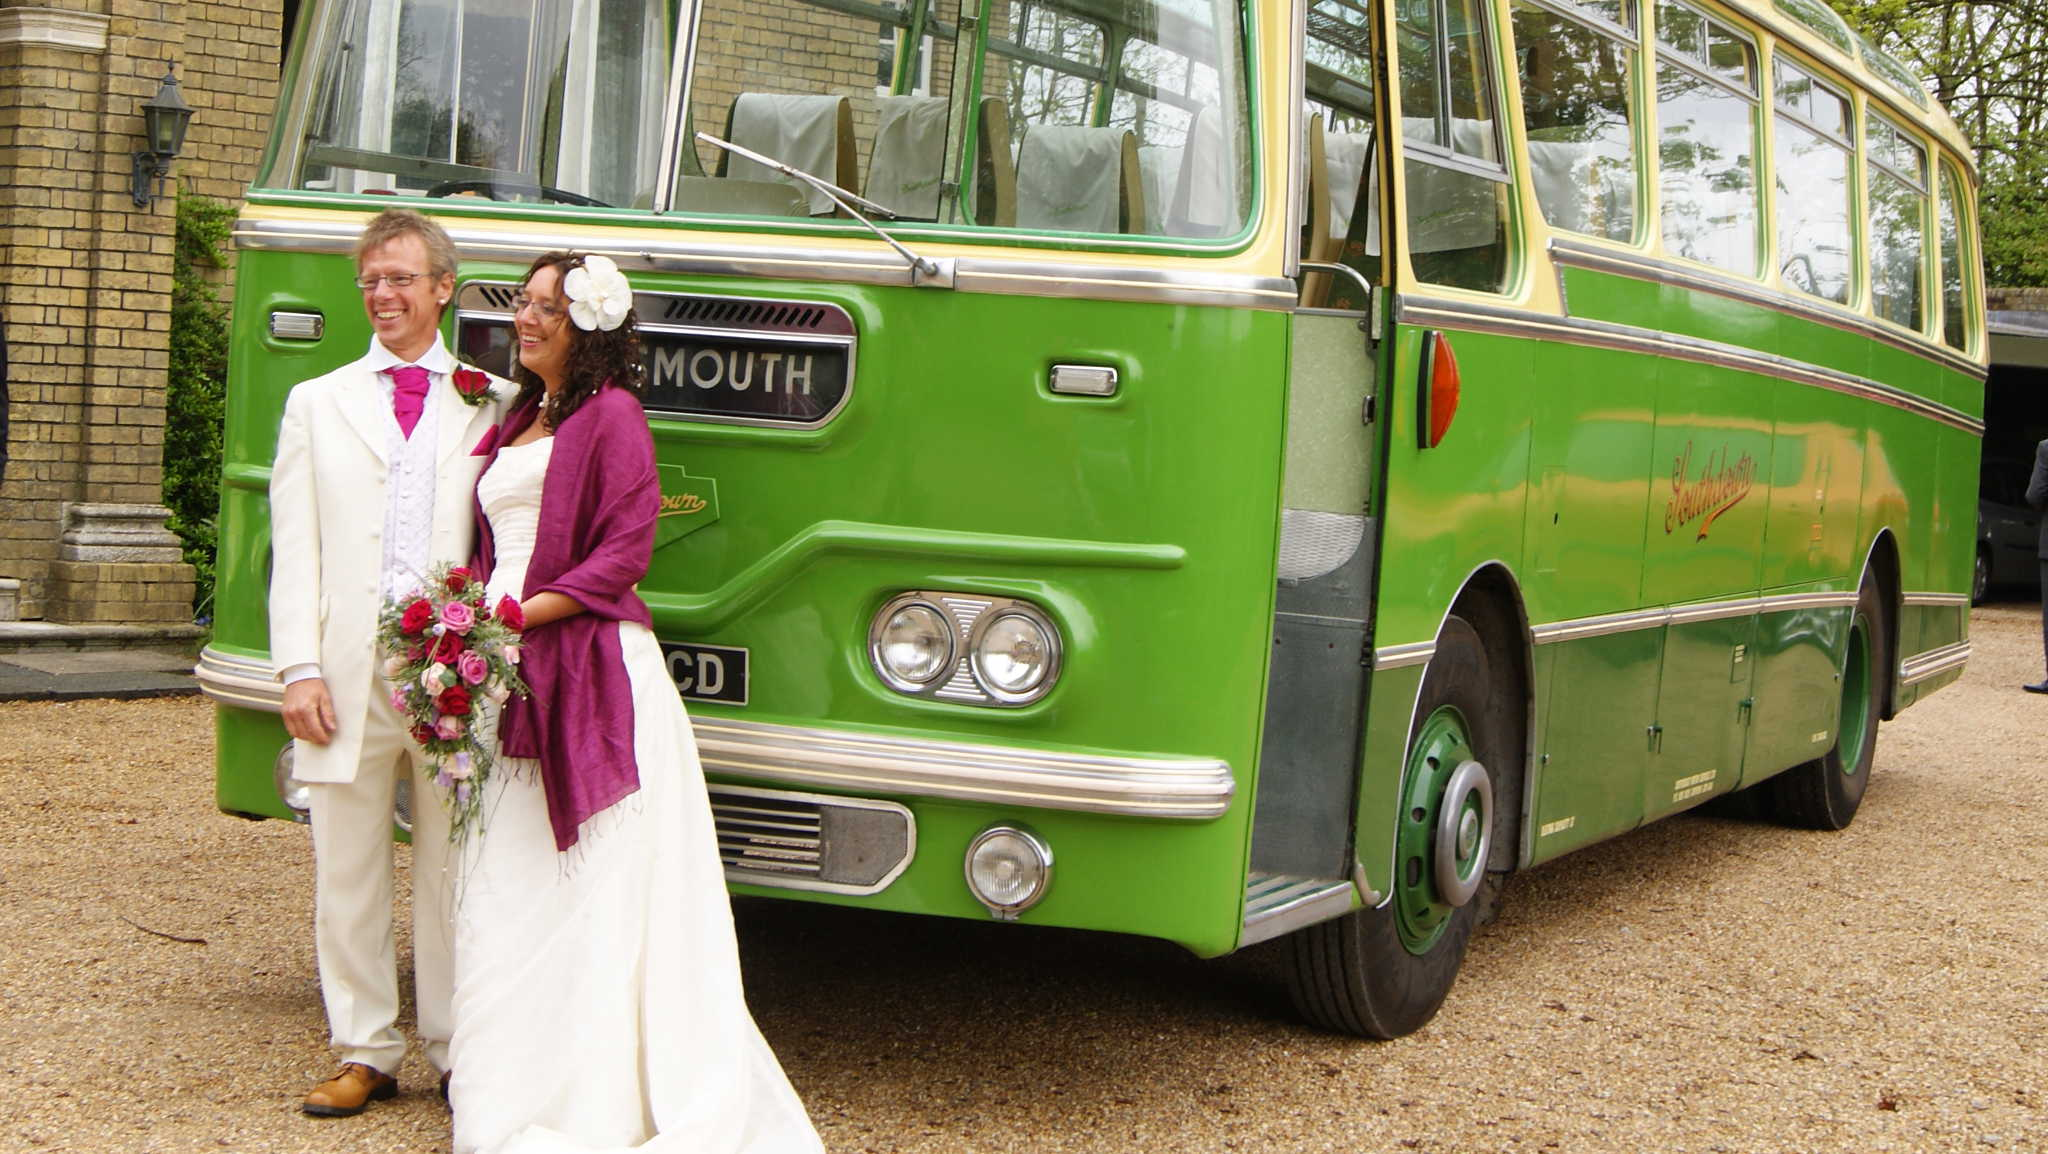 Wedding buses